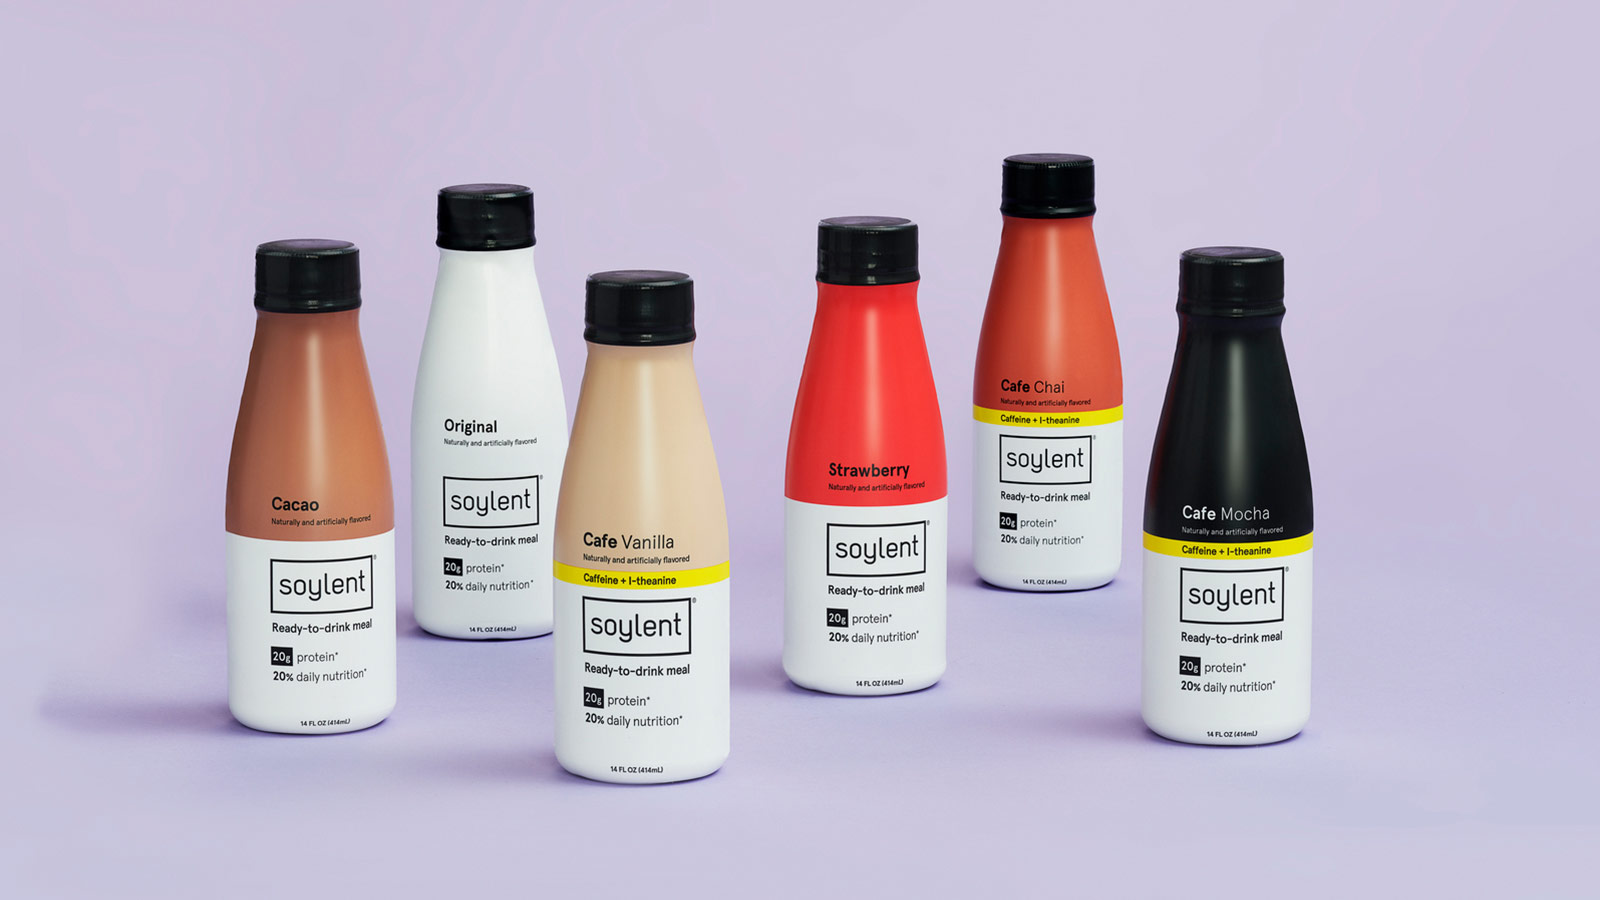 Bottle of Soylent Drink Original on a desk with school supplies.